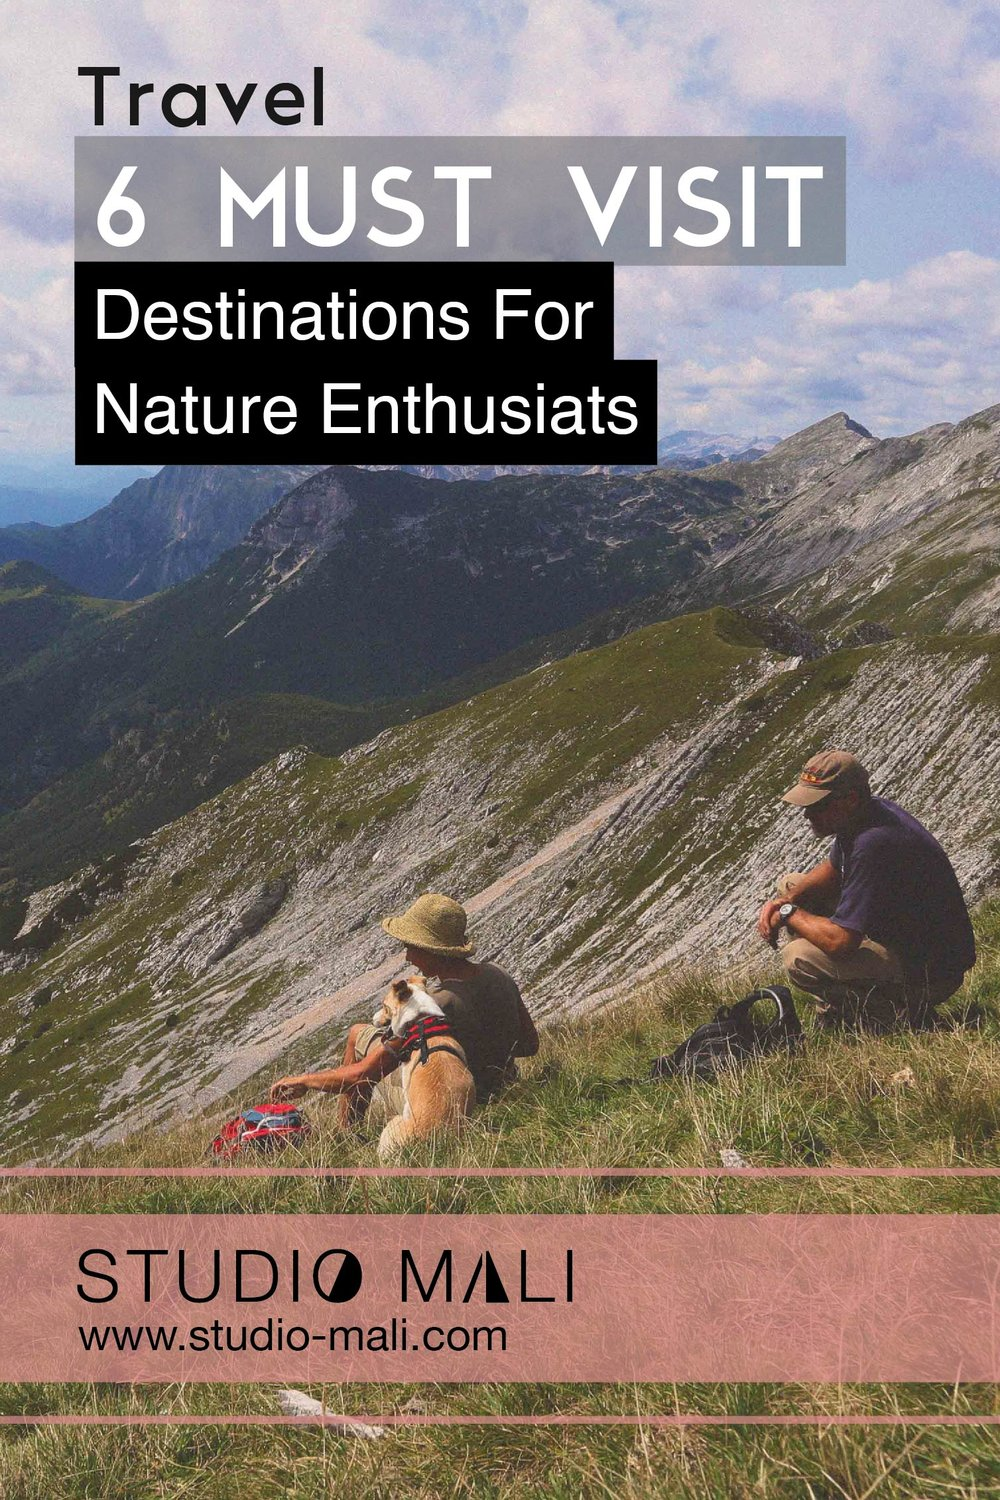 6 Must Visit Destinations For Nature Enthusiasts, by Studio Mali.jpg